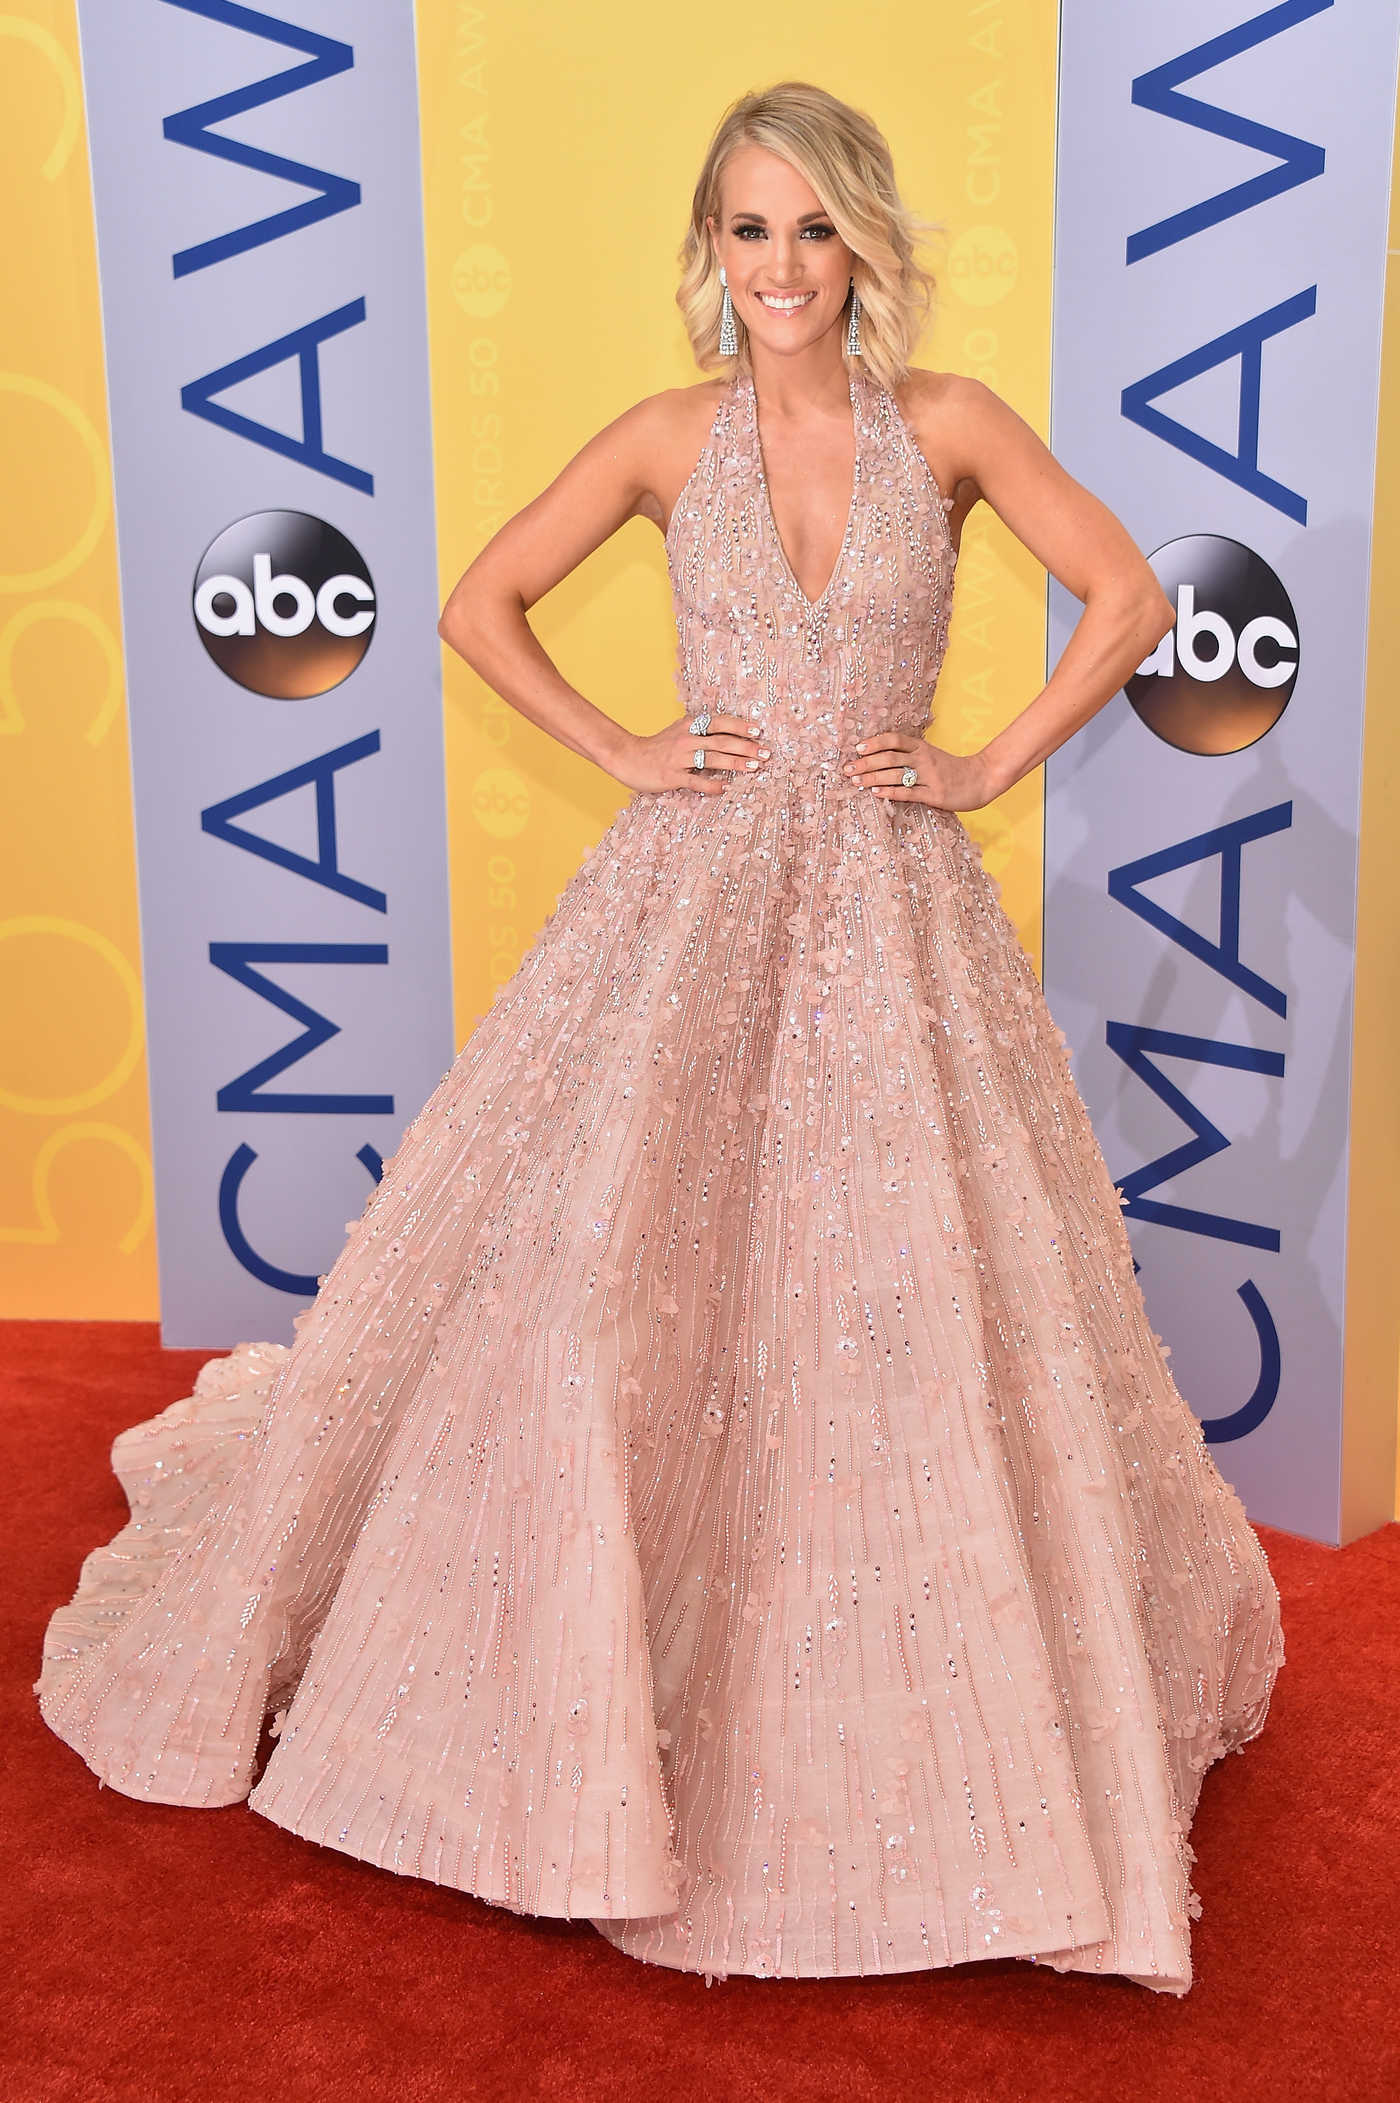 Carrie Underwood at the 50th Annual CMA Awards at Music City Center in Nashville 11/02/2016